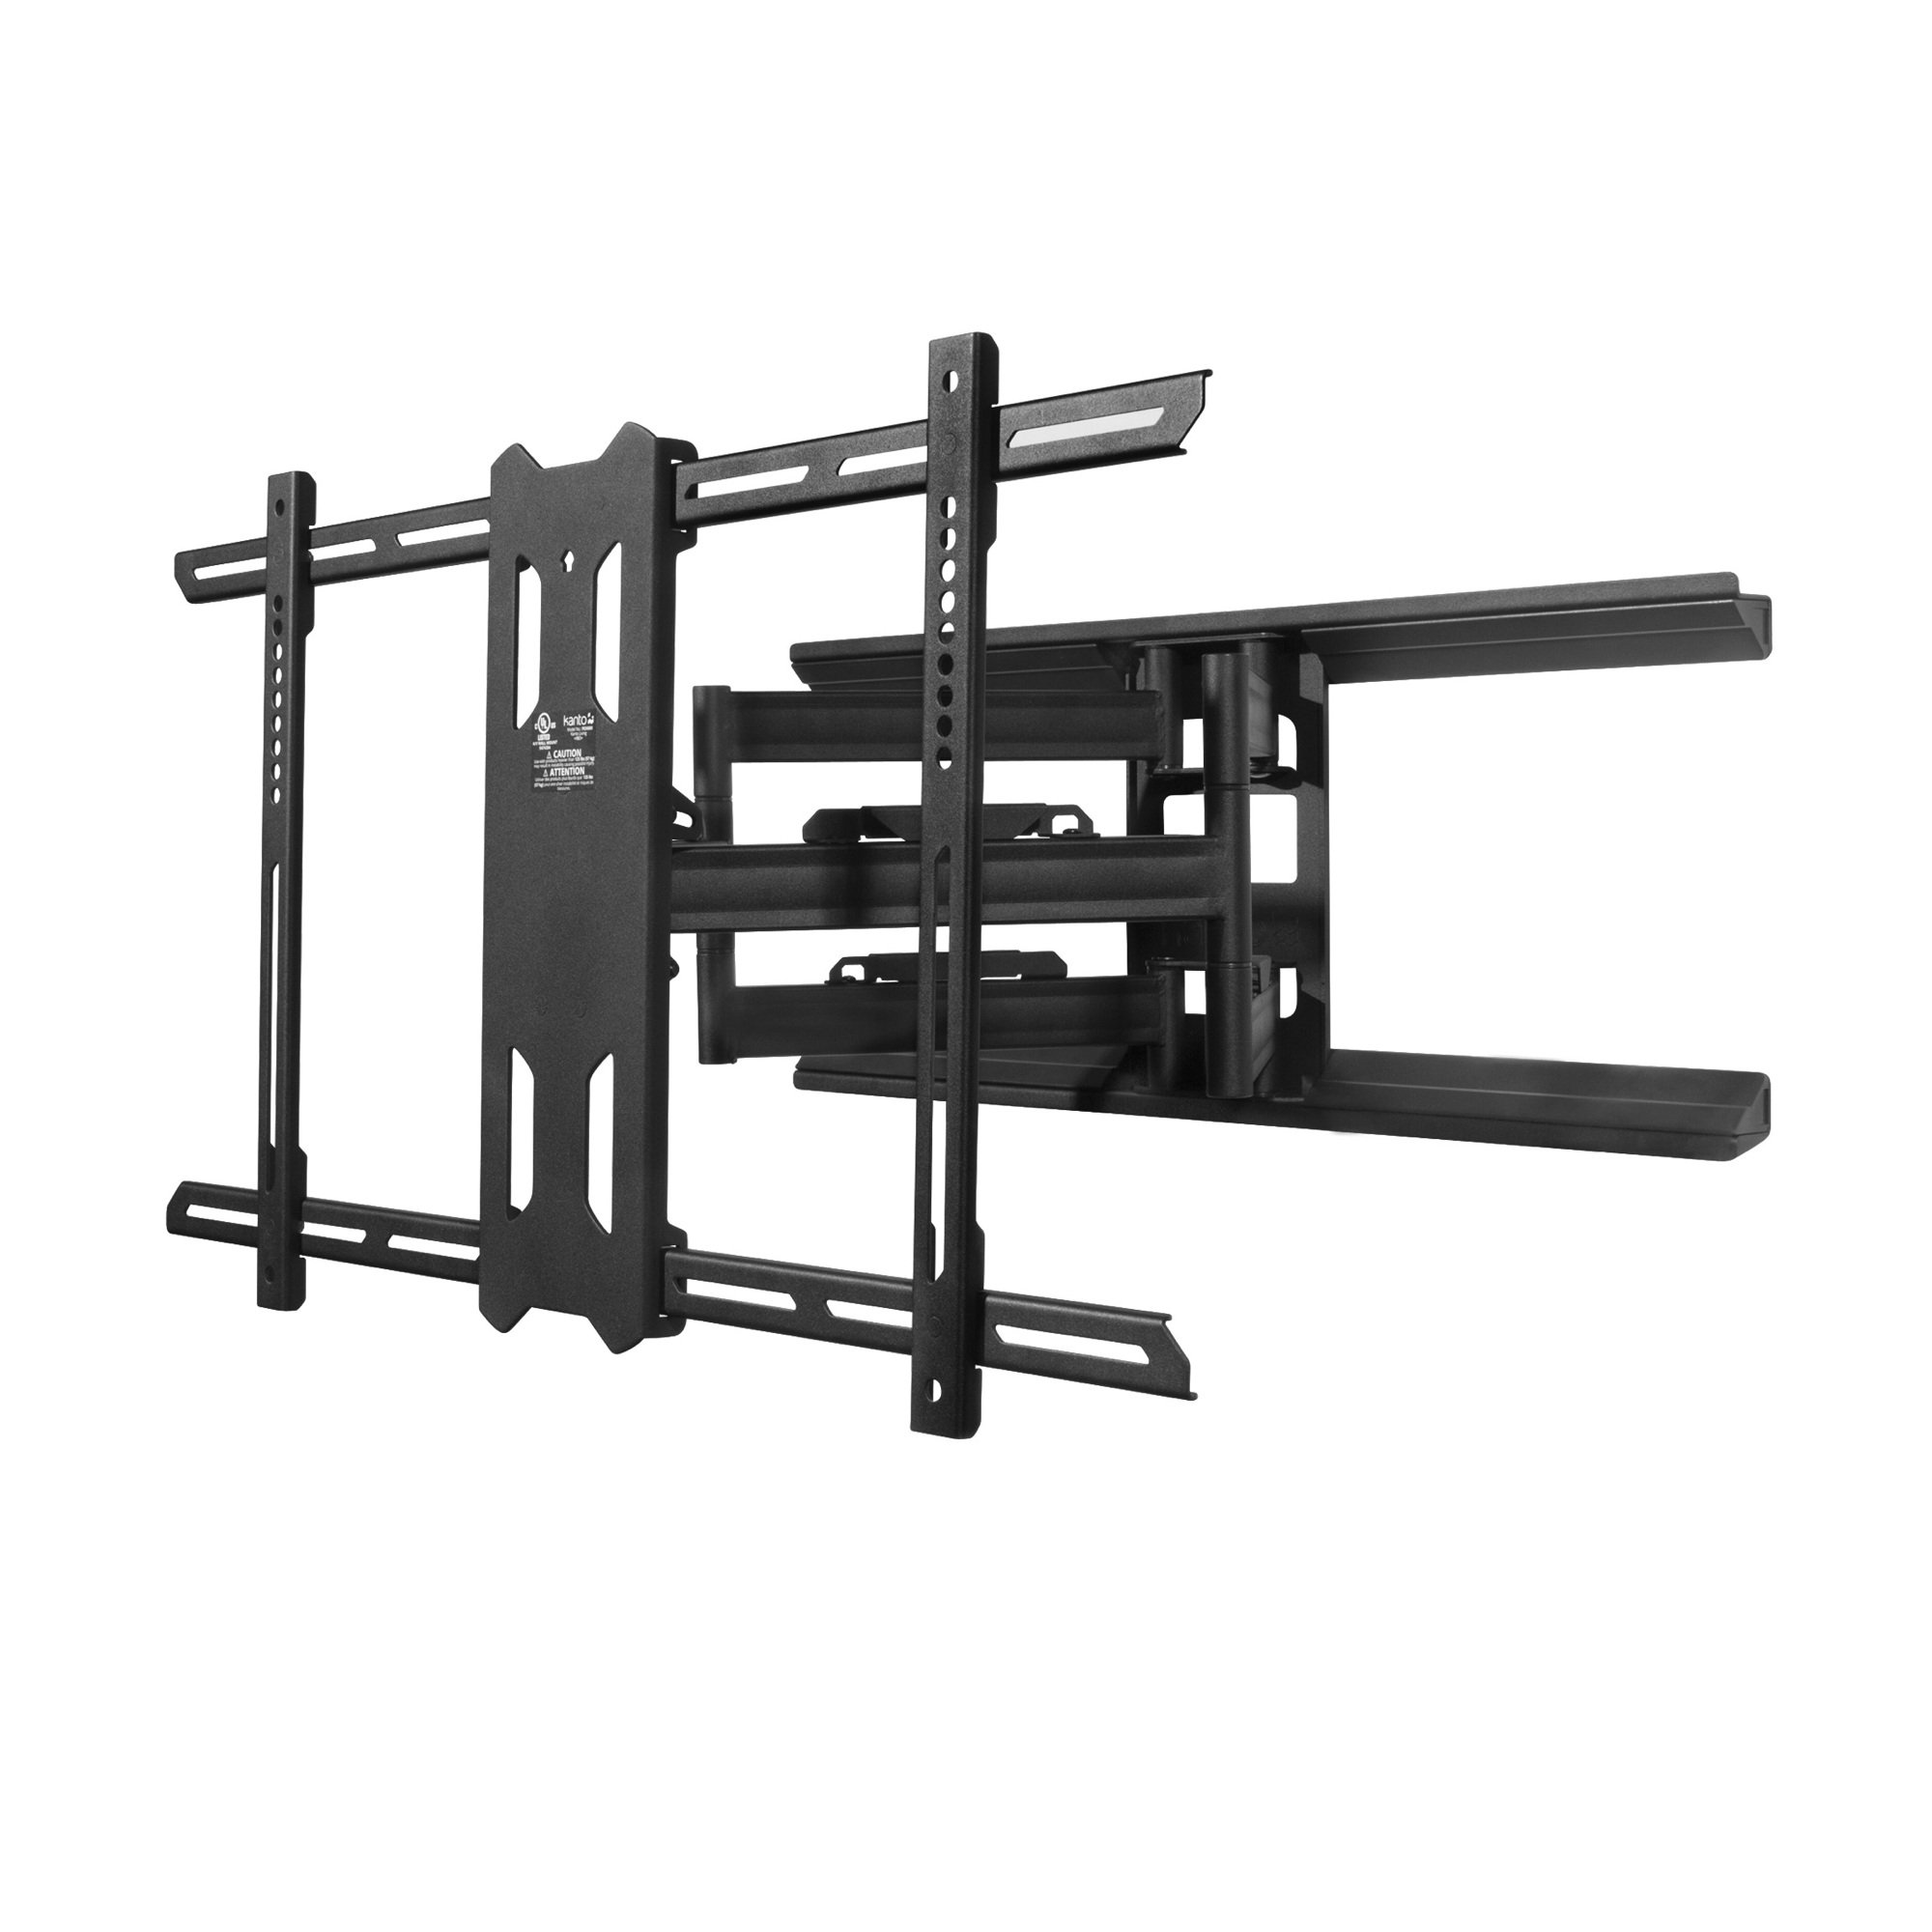 Kanto PDX680 Full-Motion TV Wall Mount for 39″–75″ Flat-Screen Monitor – Easy Install – Black